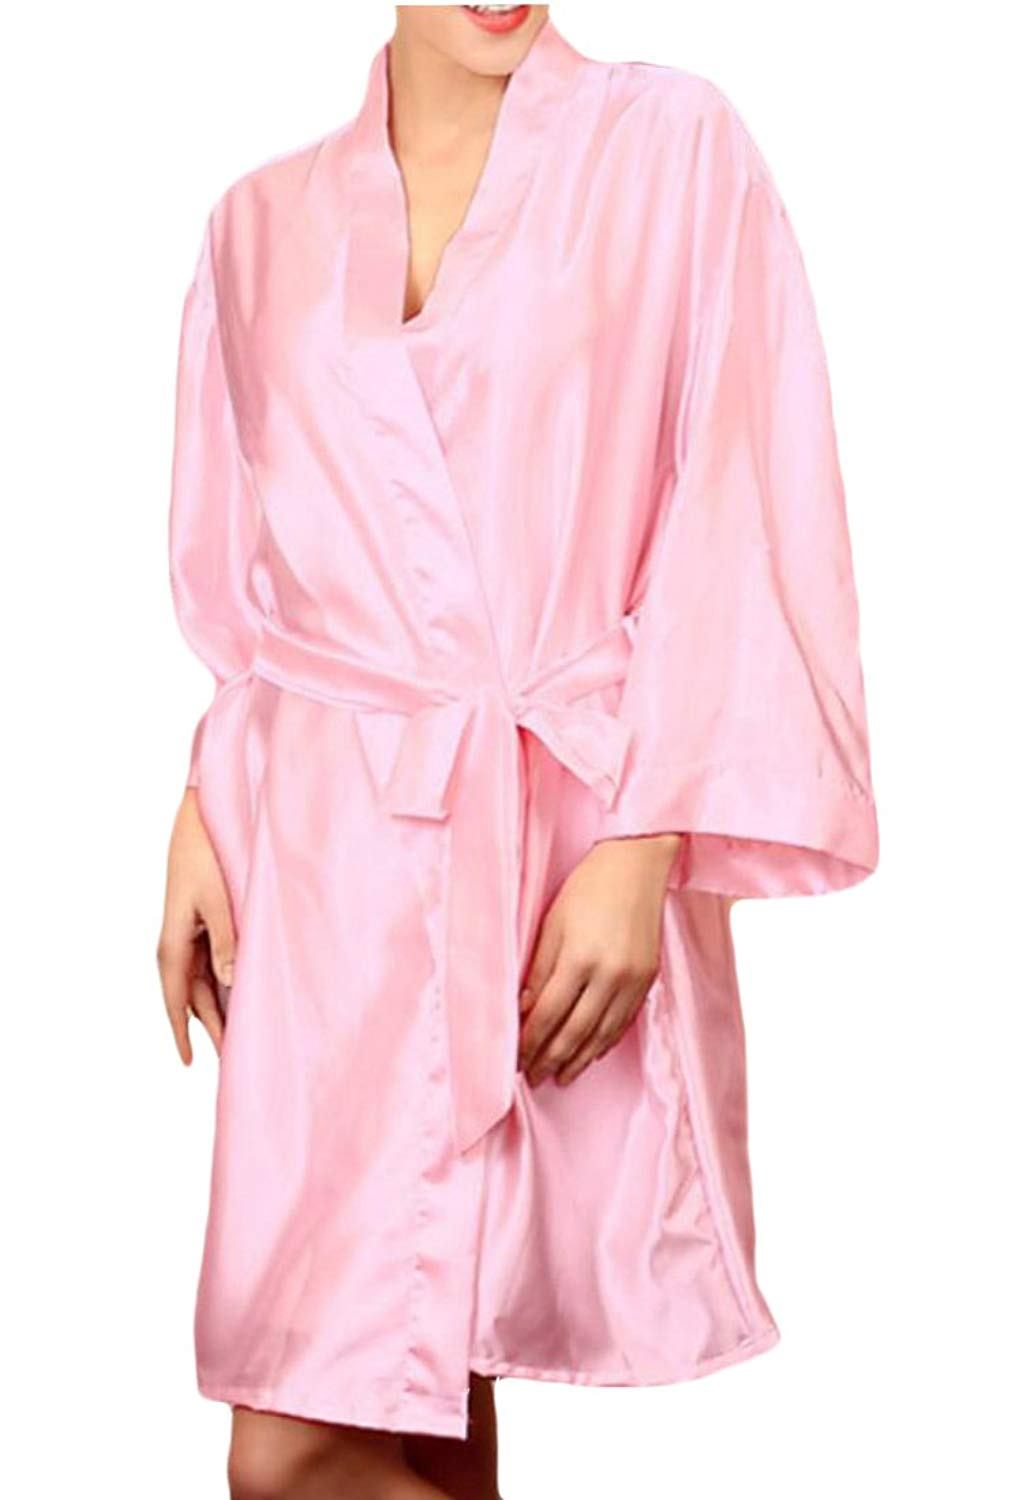 Get Quotations · Jofemuho Women Plus Size Satin Pure Color Sleepwear  Nightgowns Nightgowns 6716b9f7a